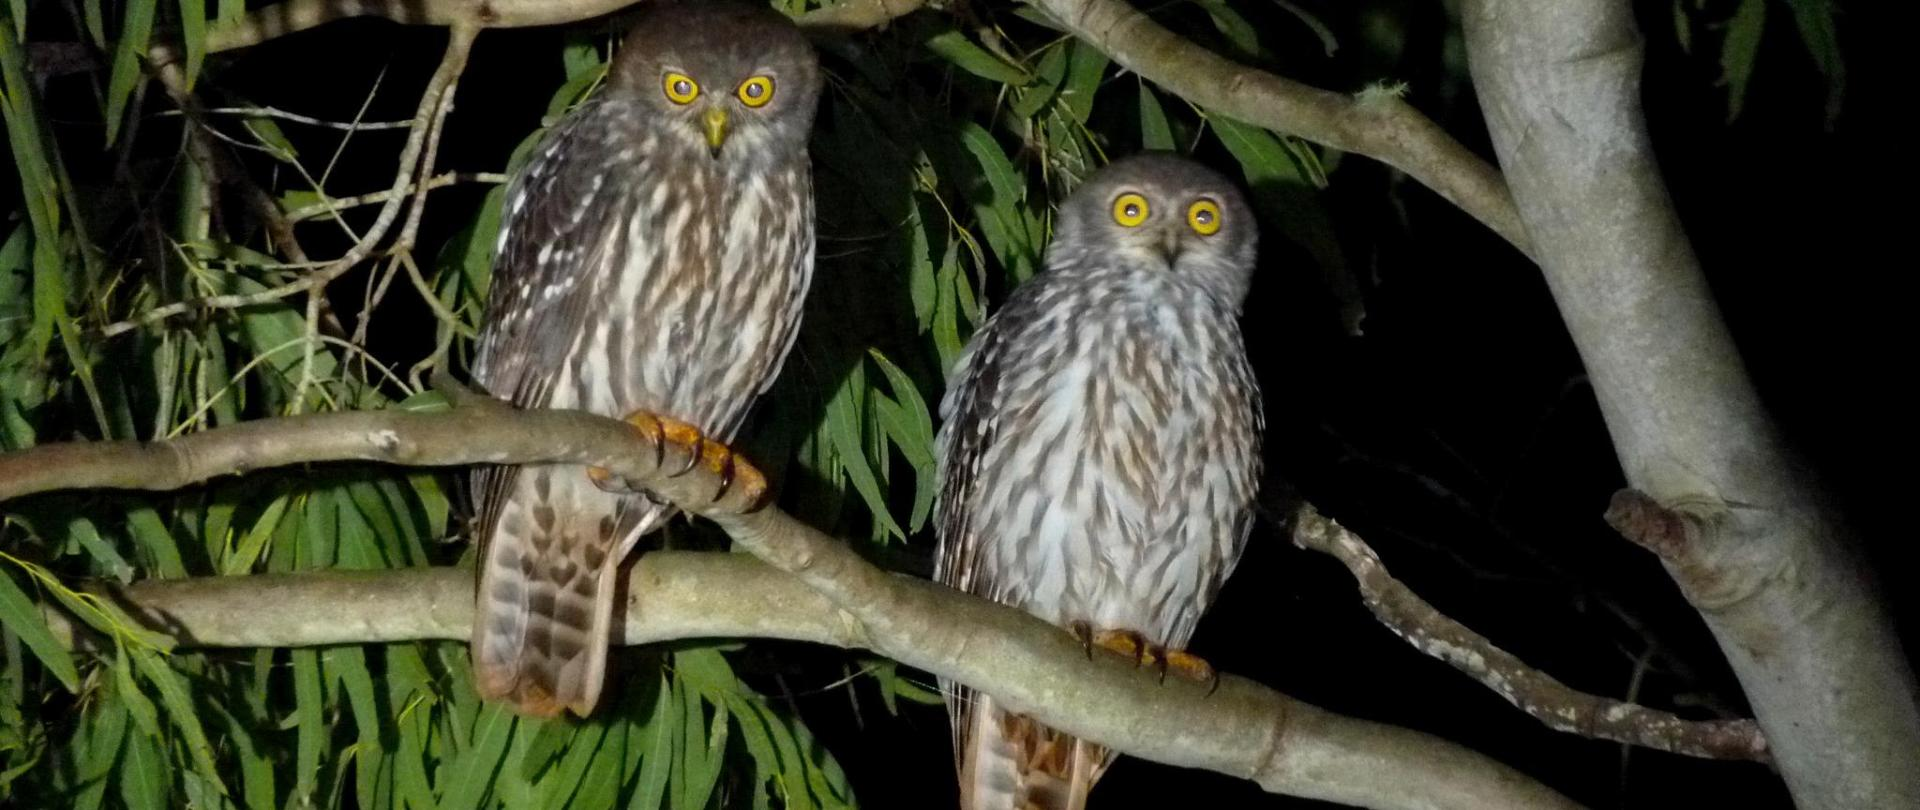 barking_owl_our_place_pair-3.png